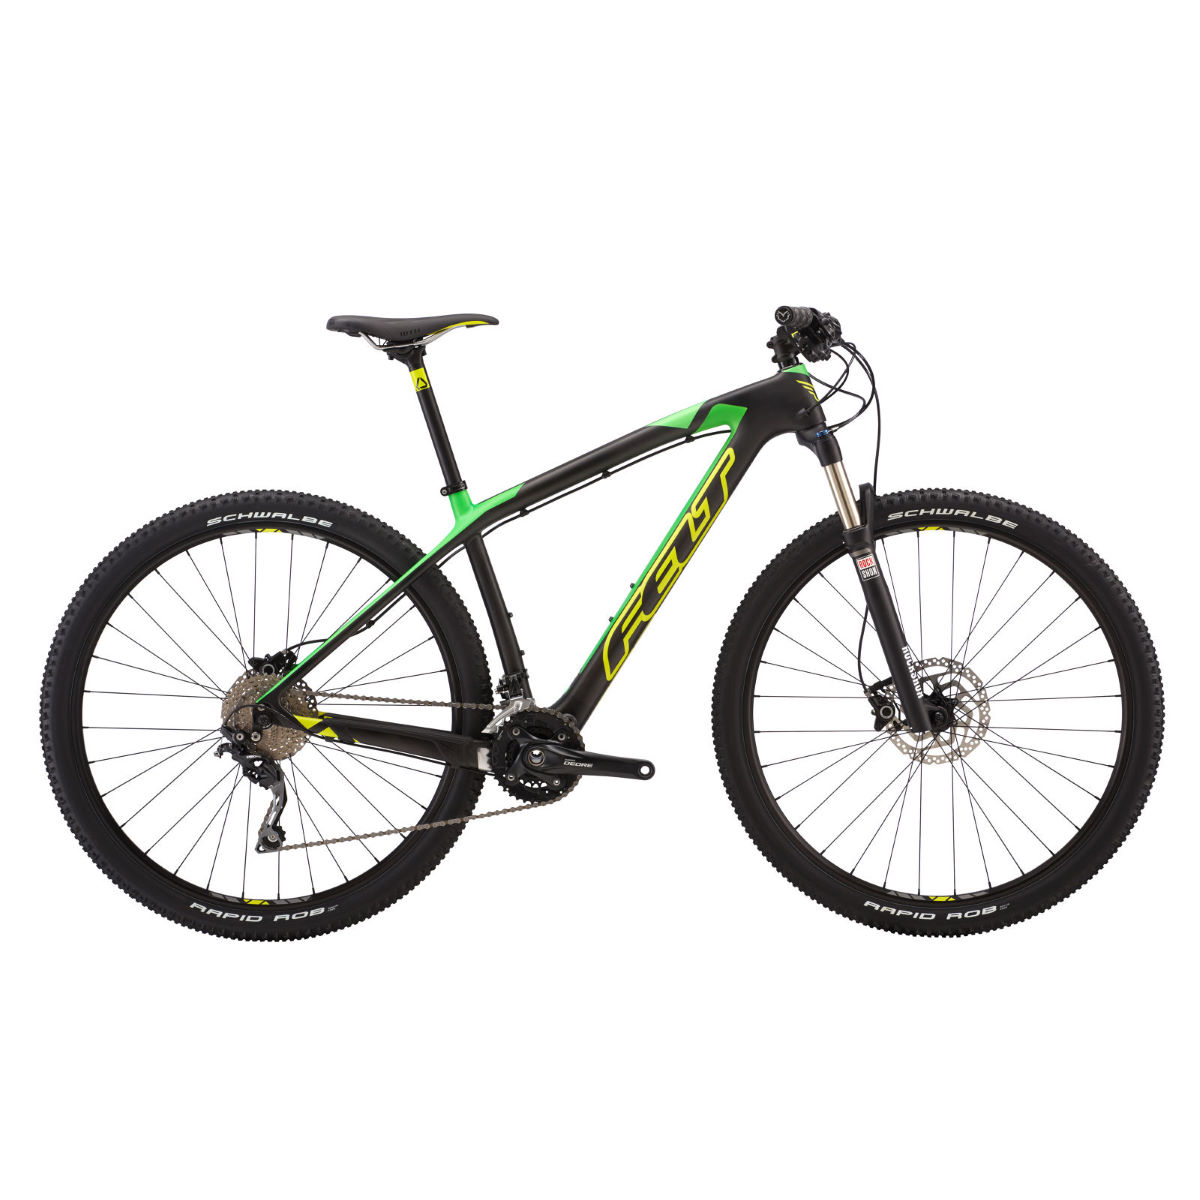 VTT Felt Nine 5 (2016) - 16'' Carbon/Green VTT semi-rigides